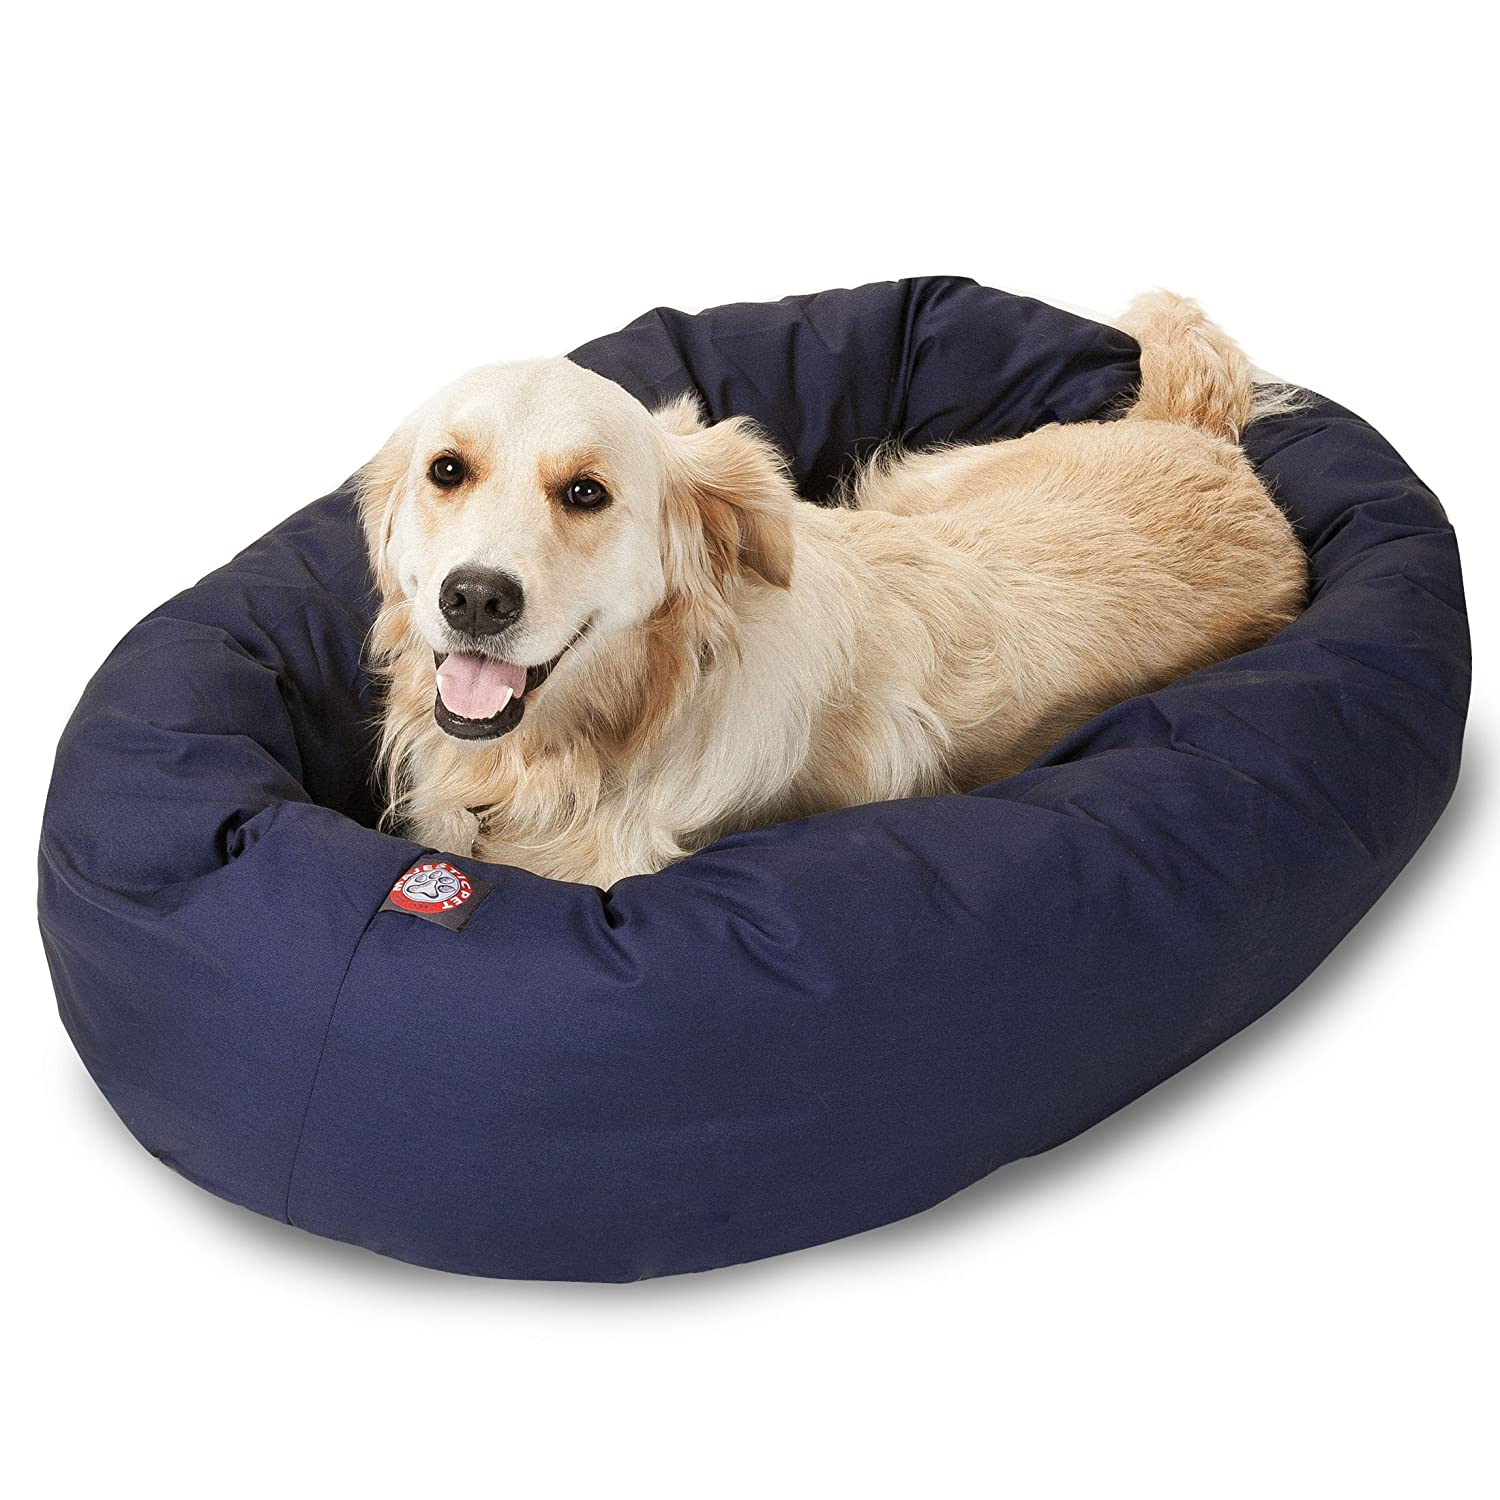 bluee 40-inch bluee 40-inch Majestic Pet 40 Inch bluee Bagel Dog Bed By Products